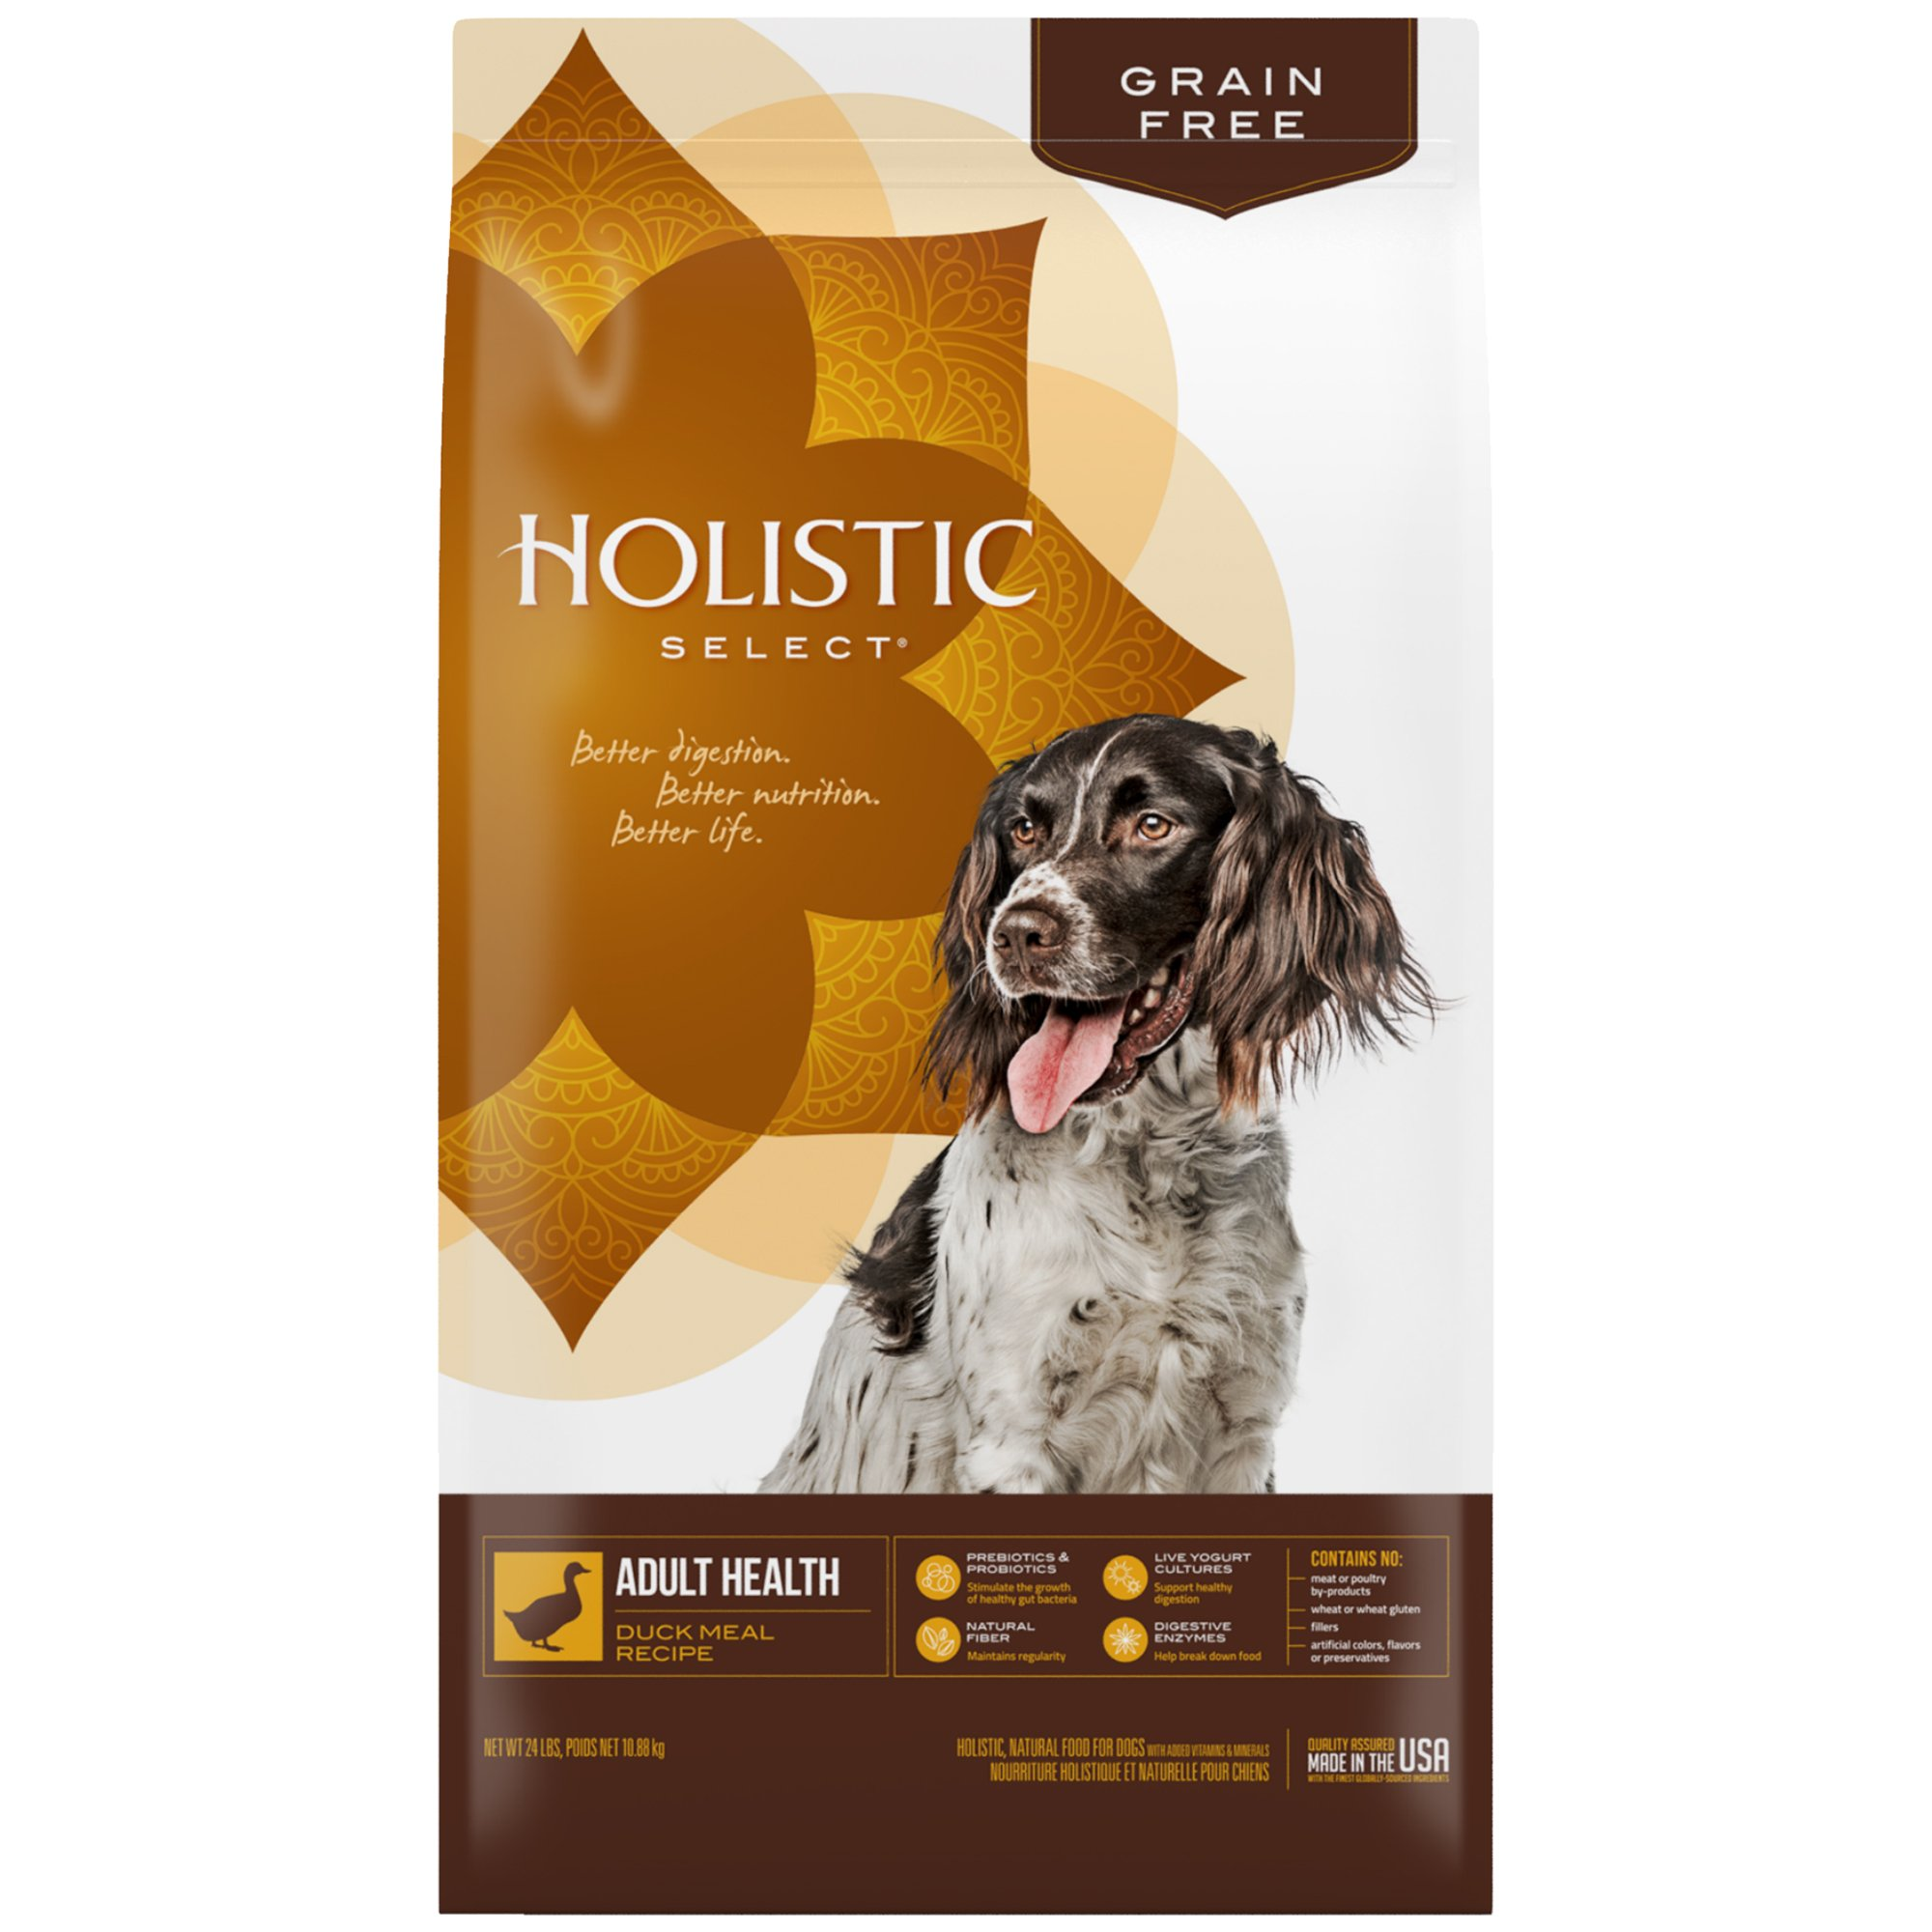 Holistic Select Natural Grain Free Dry Dog Food, Duck Meal Recipe, 24-Pound Bag